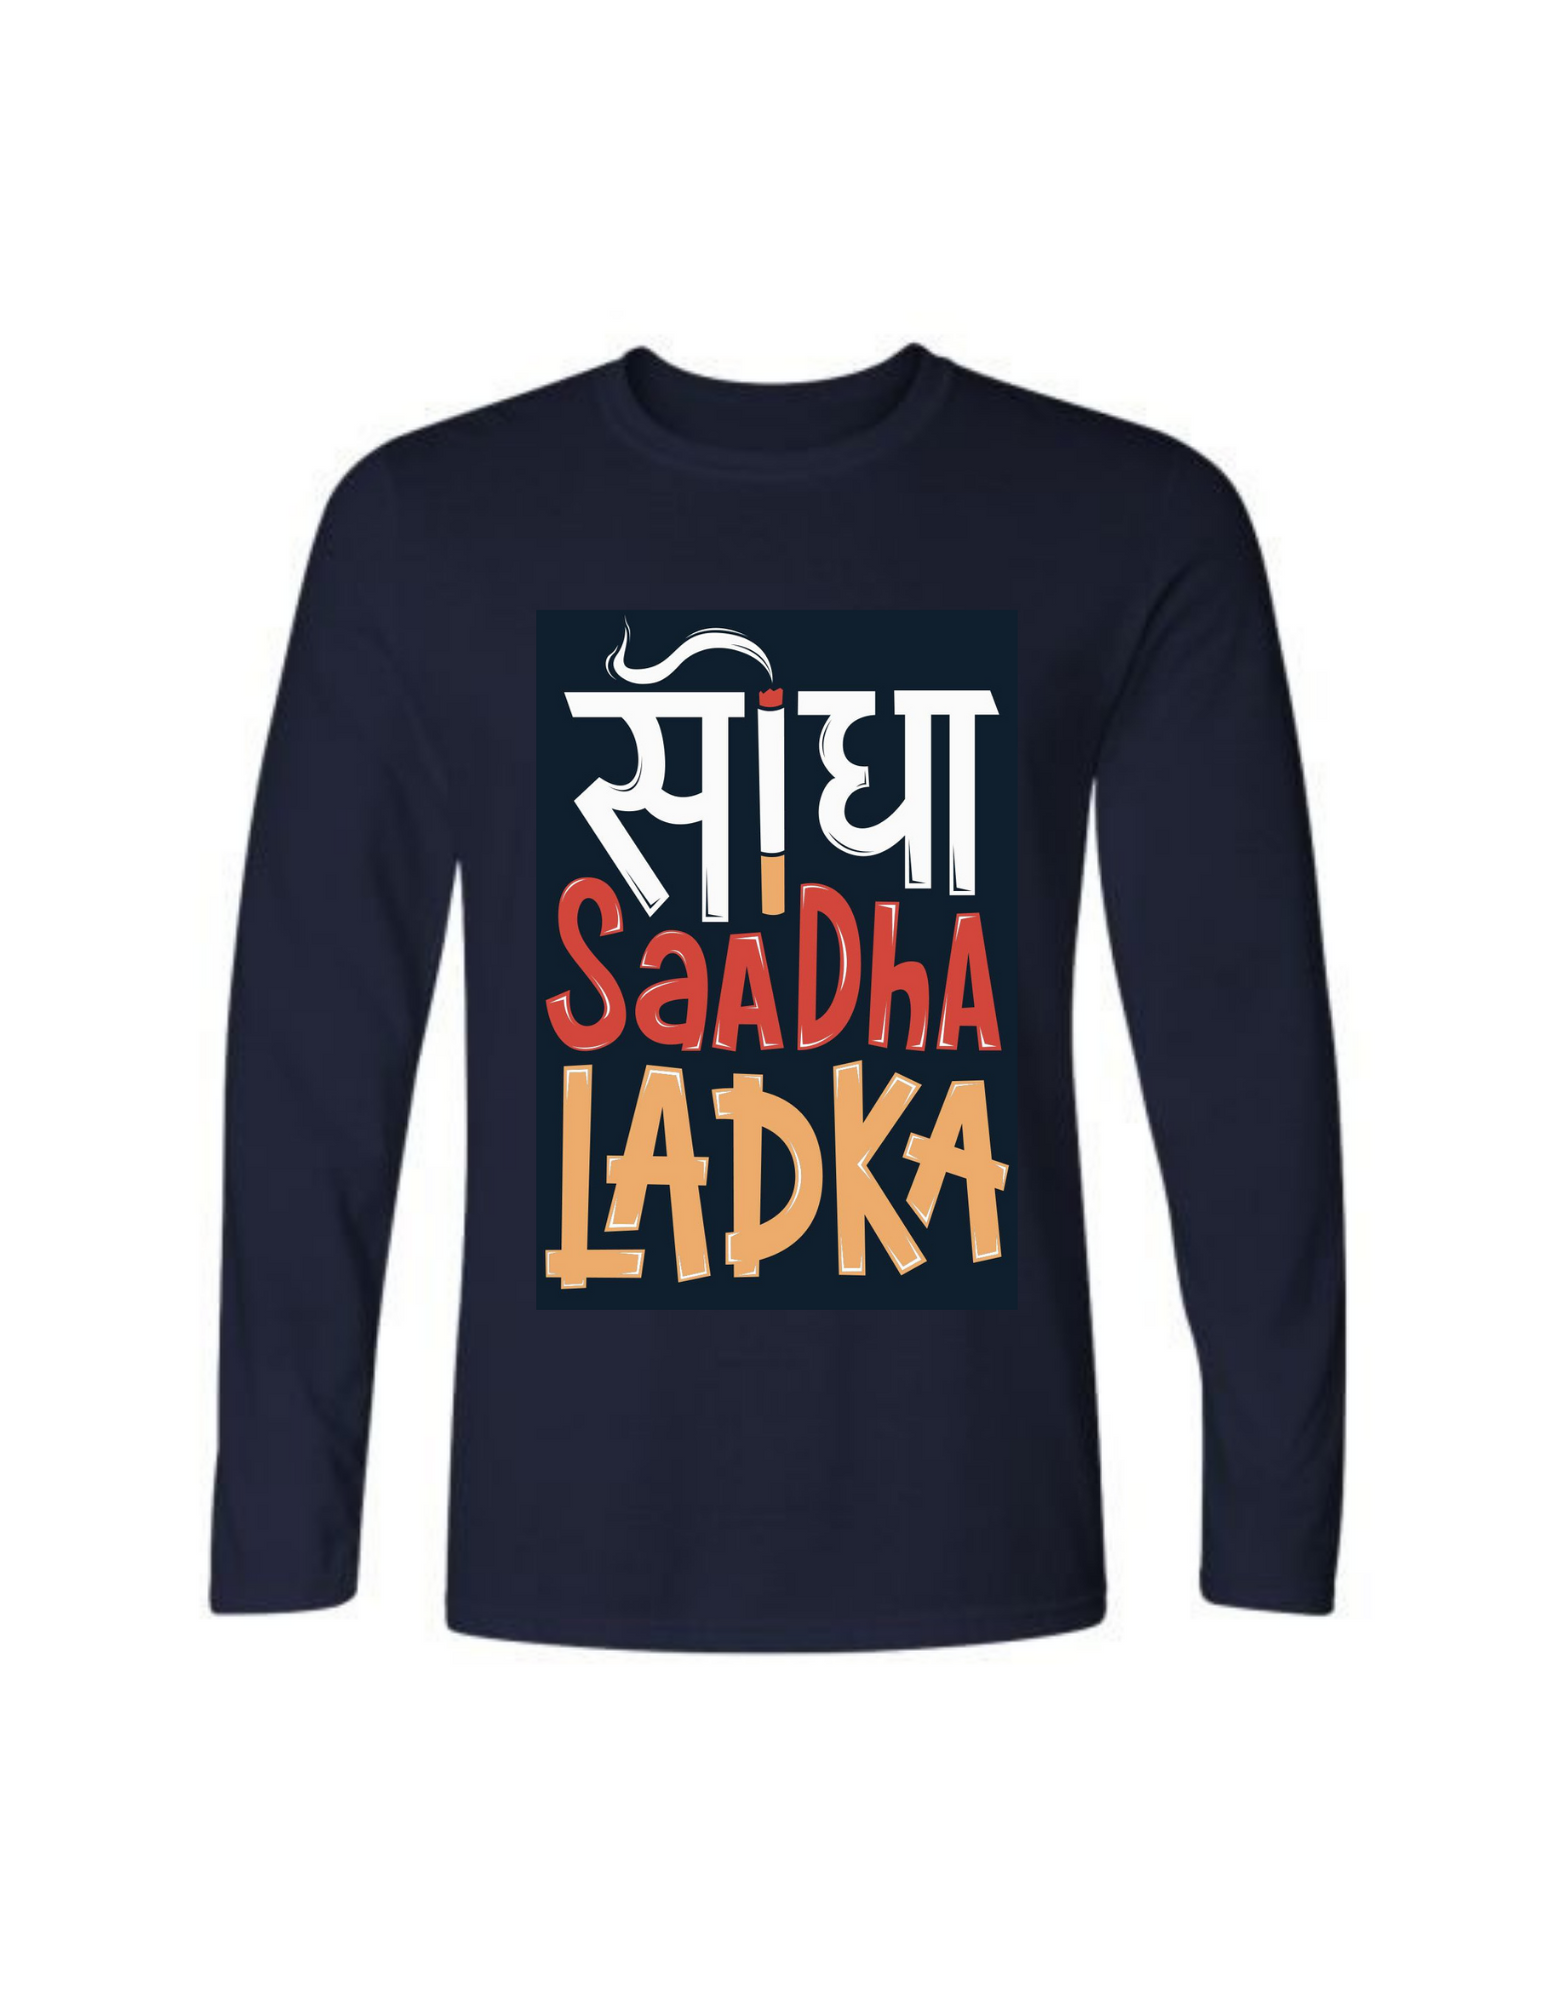 SEEDHA SADHA LADKA T-SHIRT